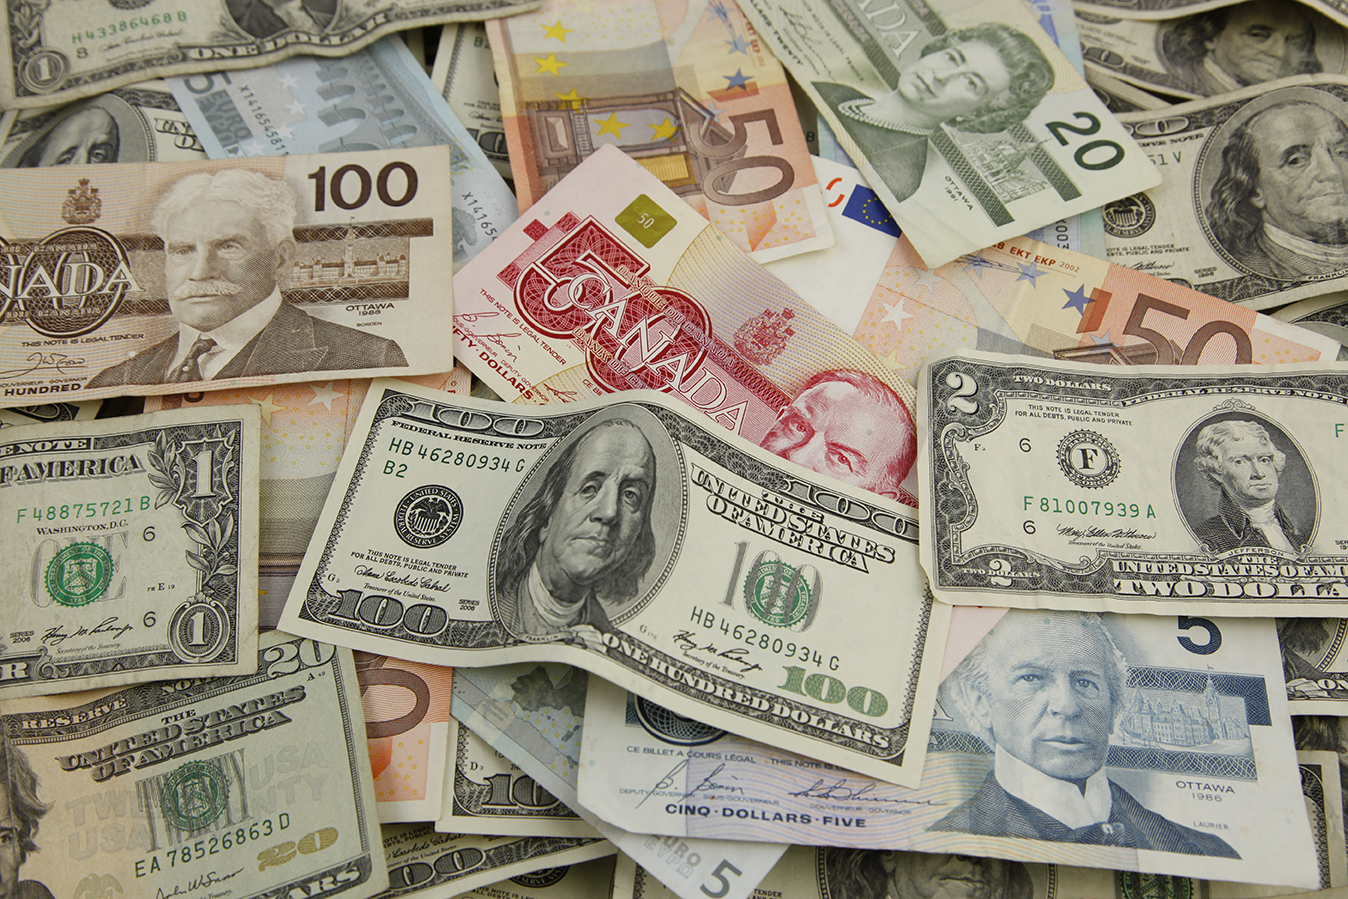 image of international currency, money from countries all over the globe